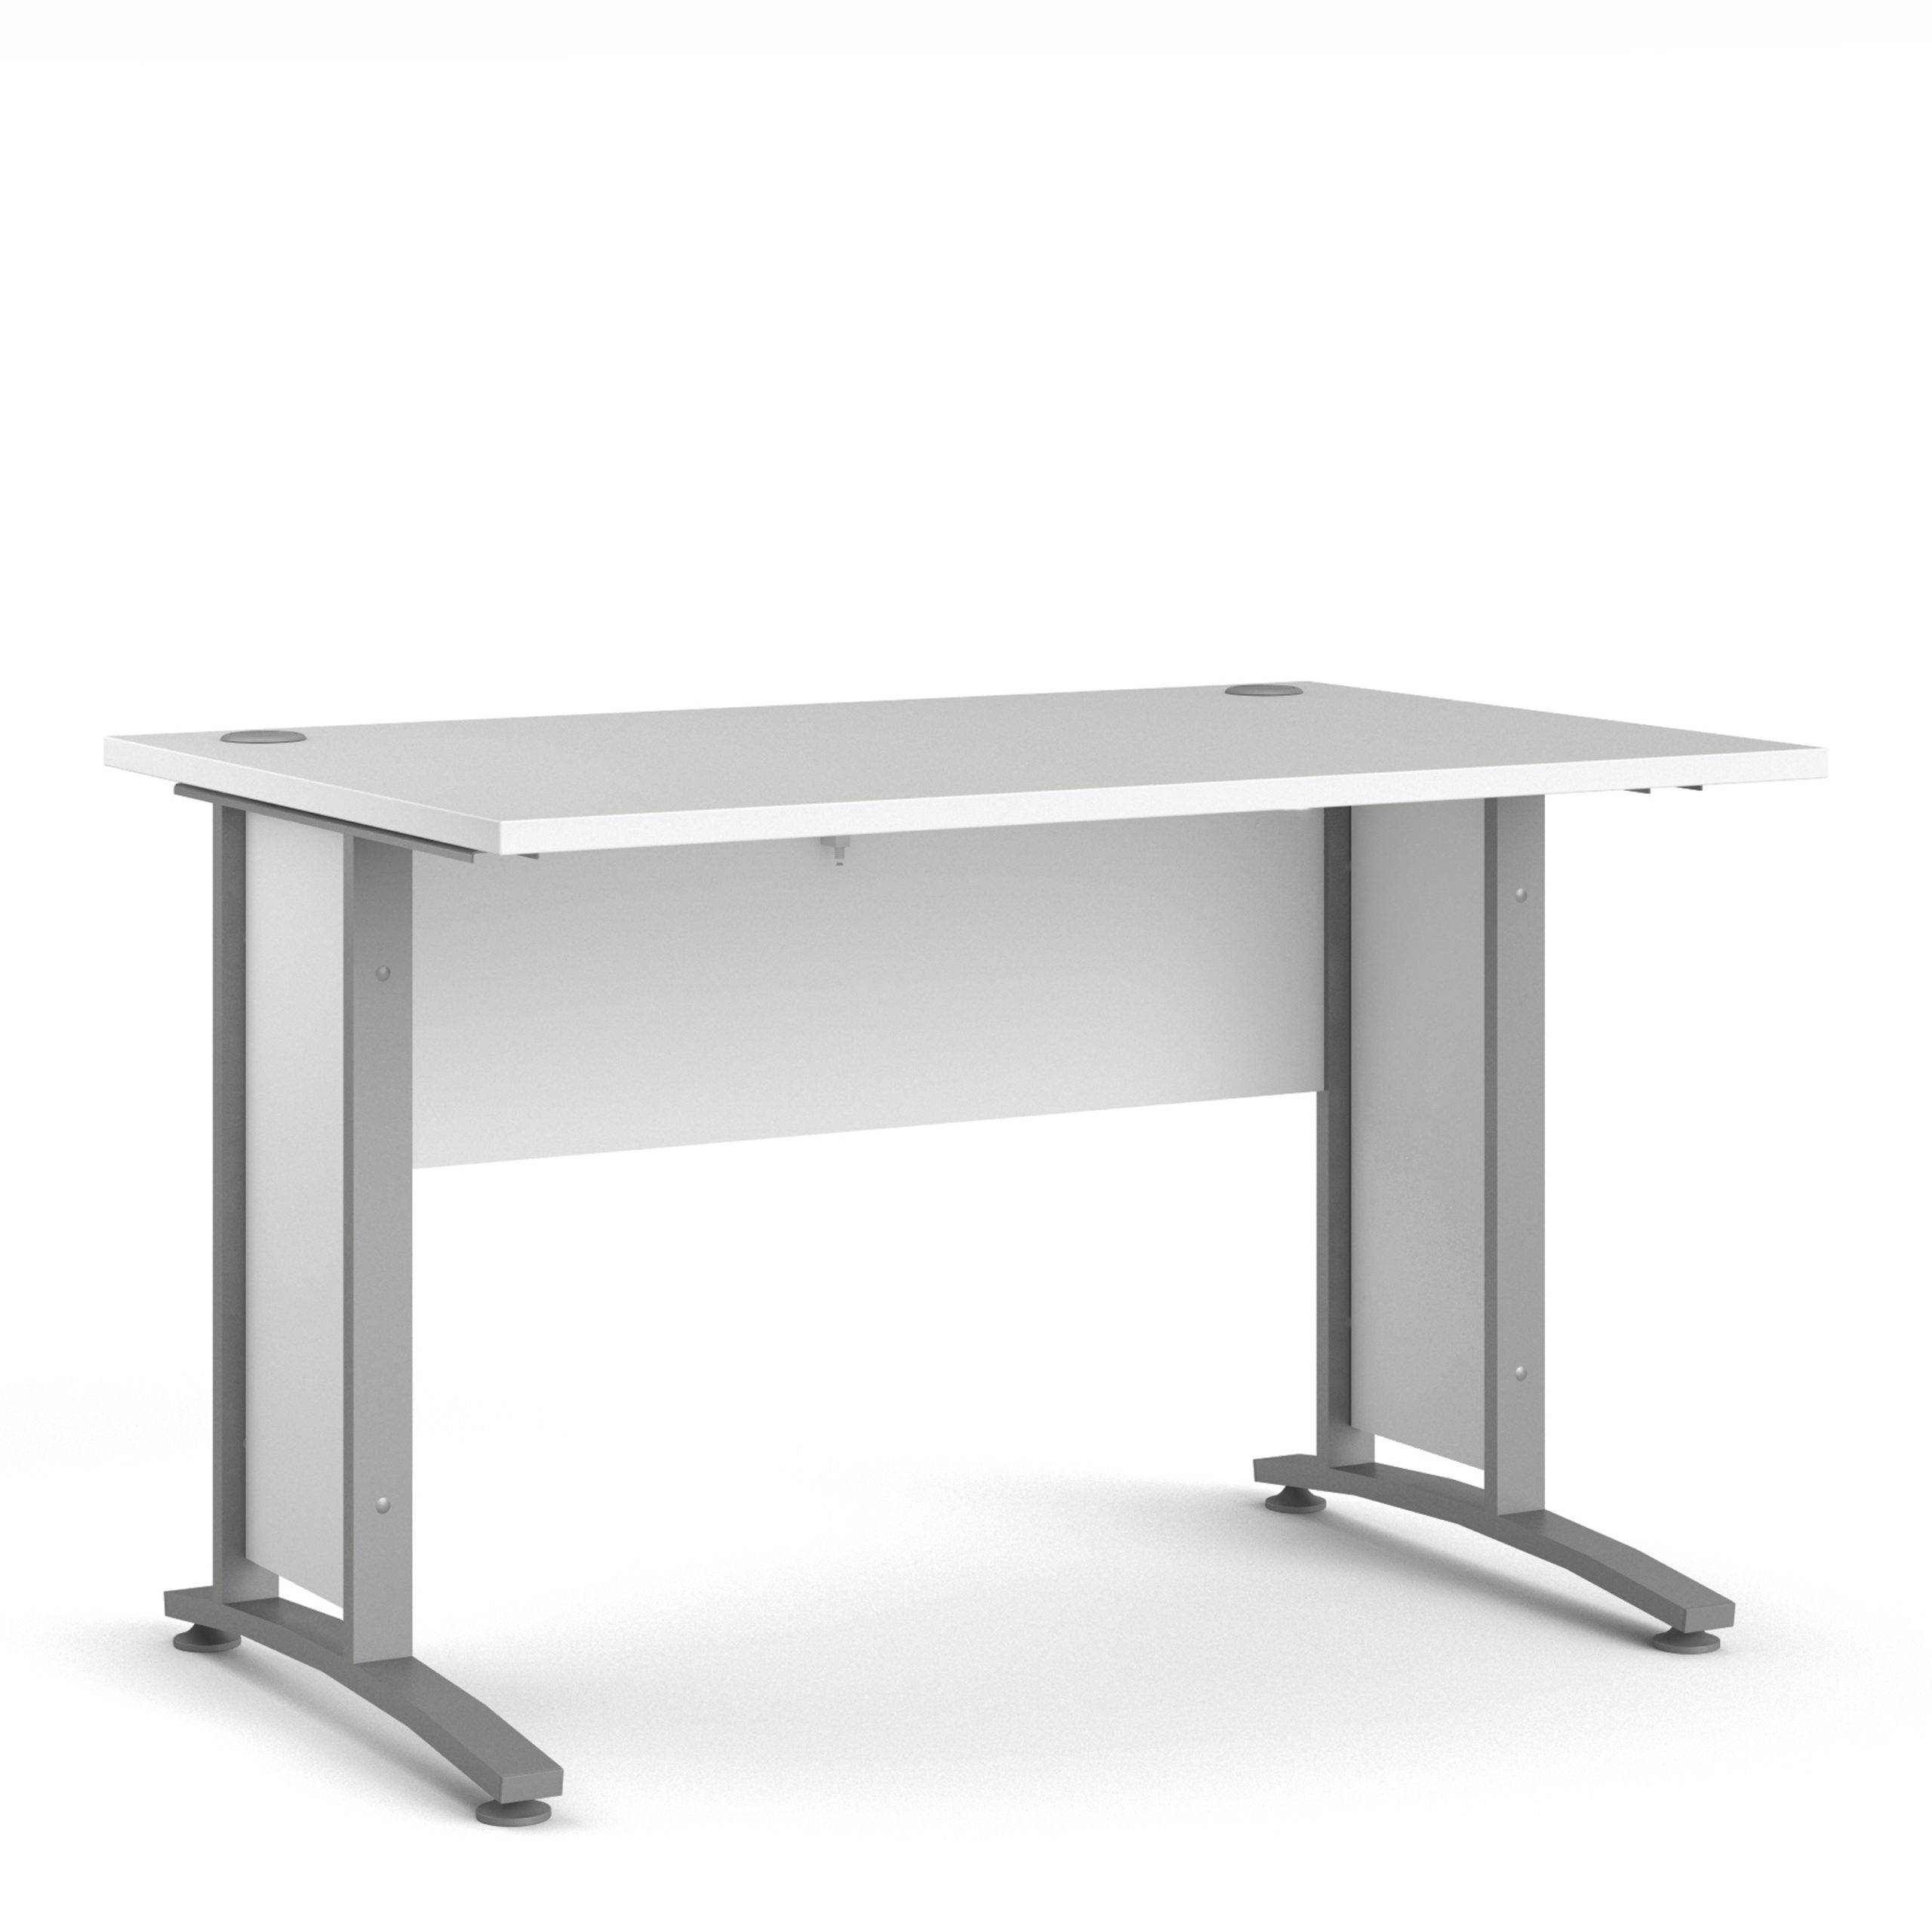 Kansas Desk 120 cm in White with Silver Grey Steel Legs   Self Assembly